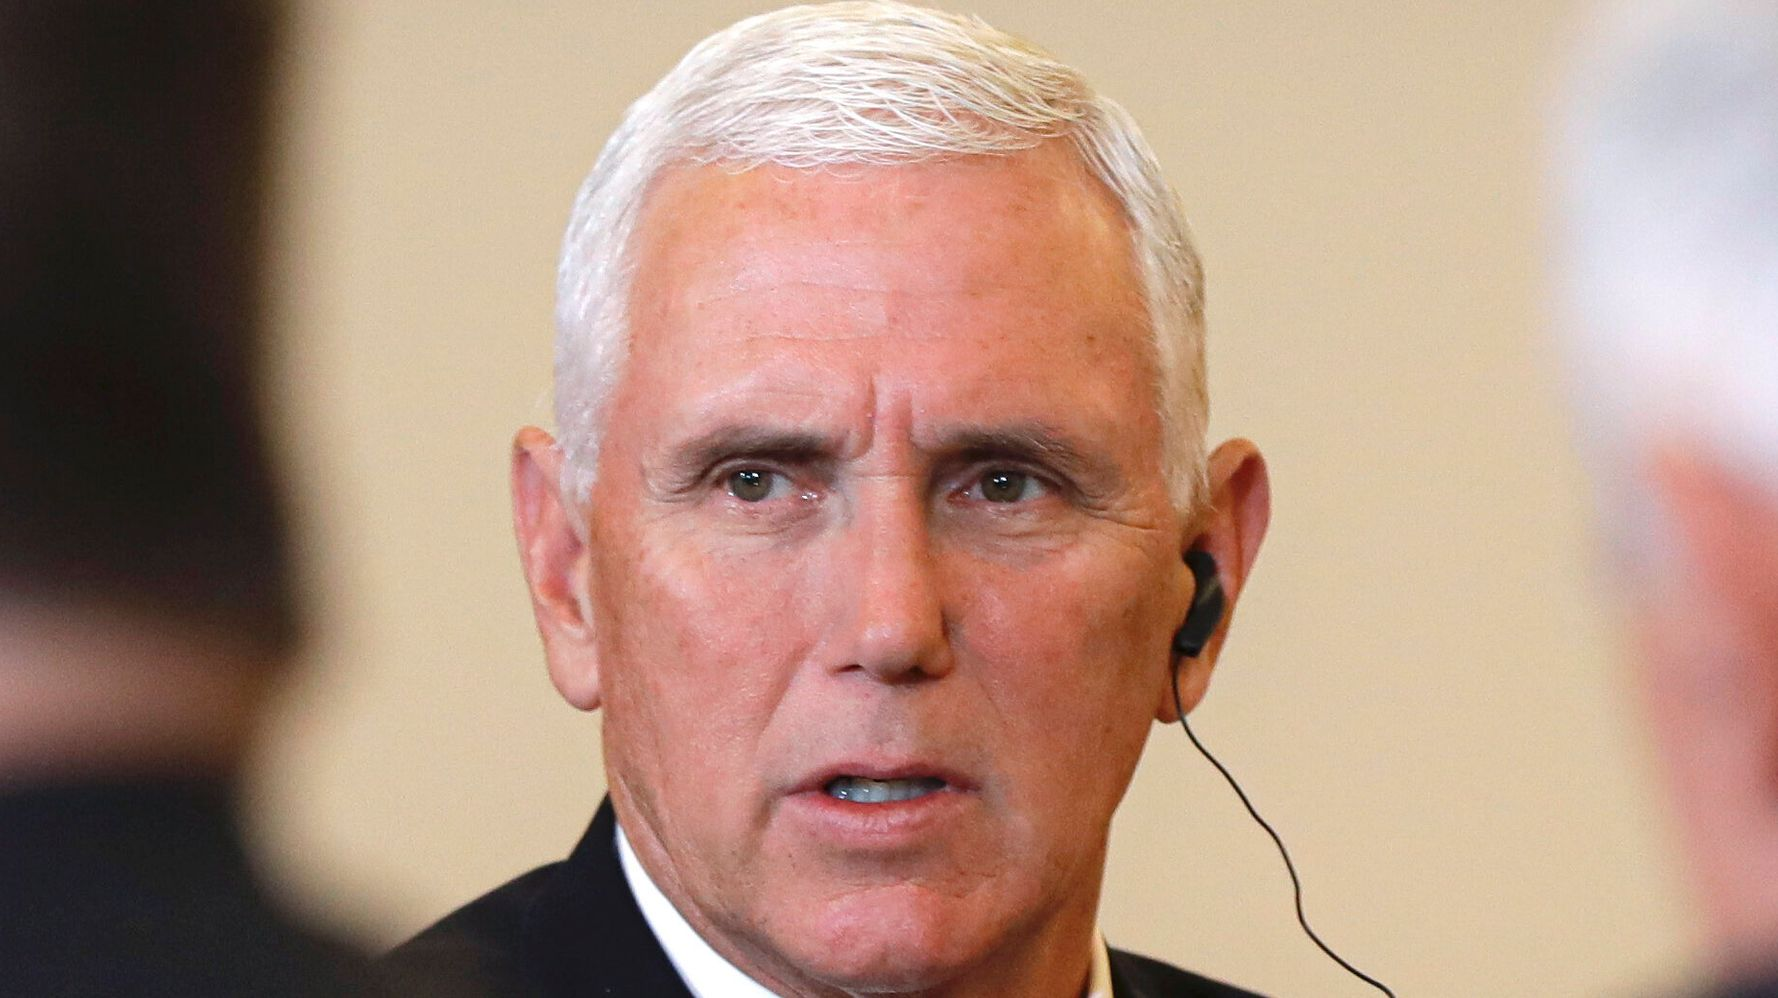 Westlake Legal Group 5d738cc123000023025126d7 Jimmy Kimmel Thinks Mike Pence Is (From) Out Of This World